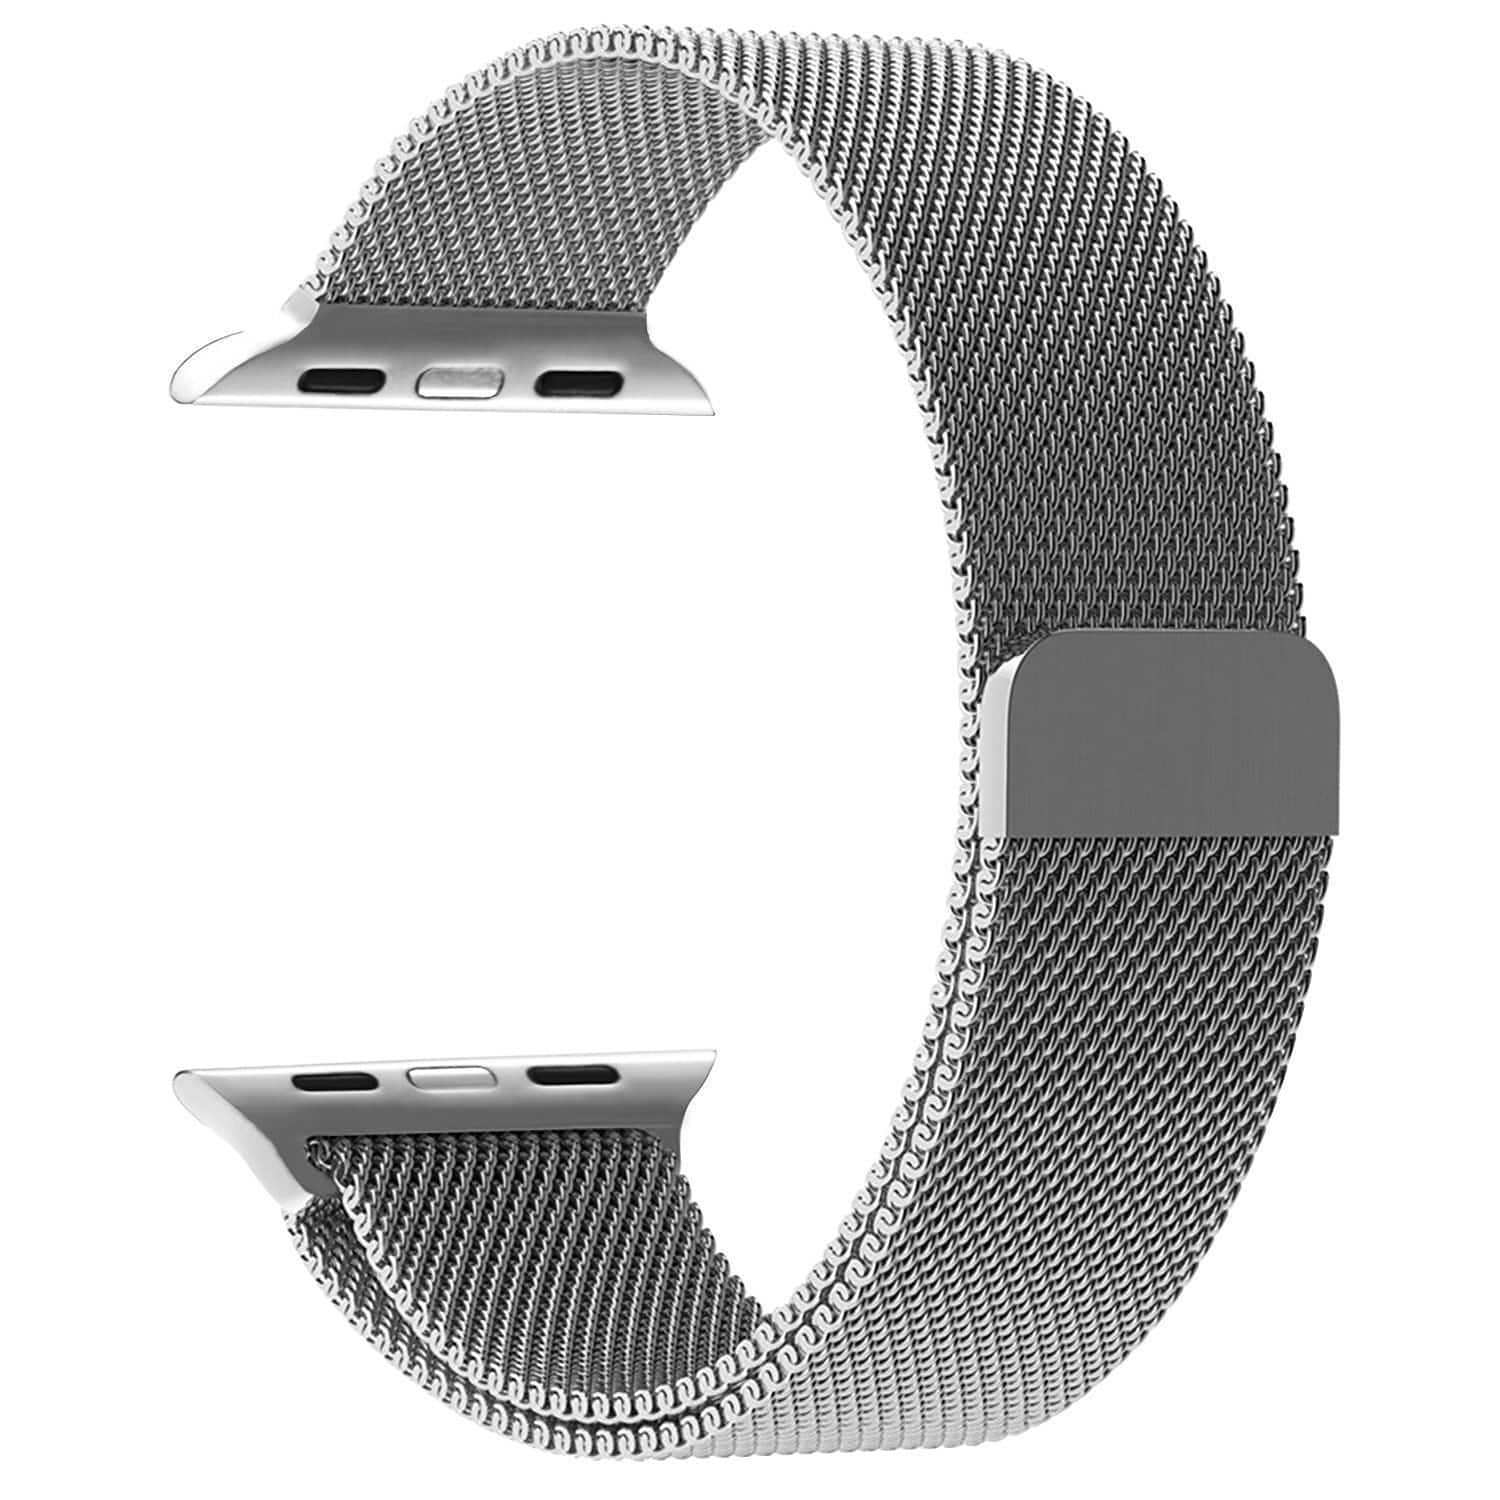 Apple Watch Band, Milanese Loop Freely Fully Magnetic Closure Clasp Band Starting from $2.99 at Amazon + free ship